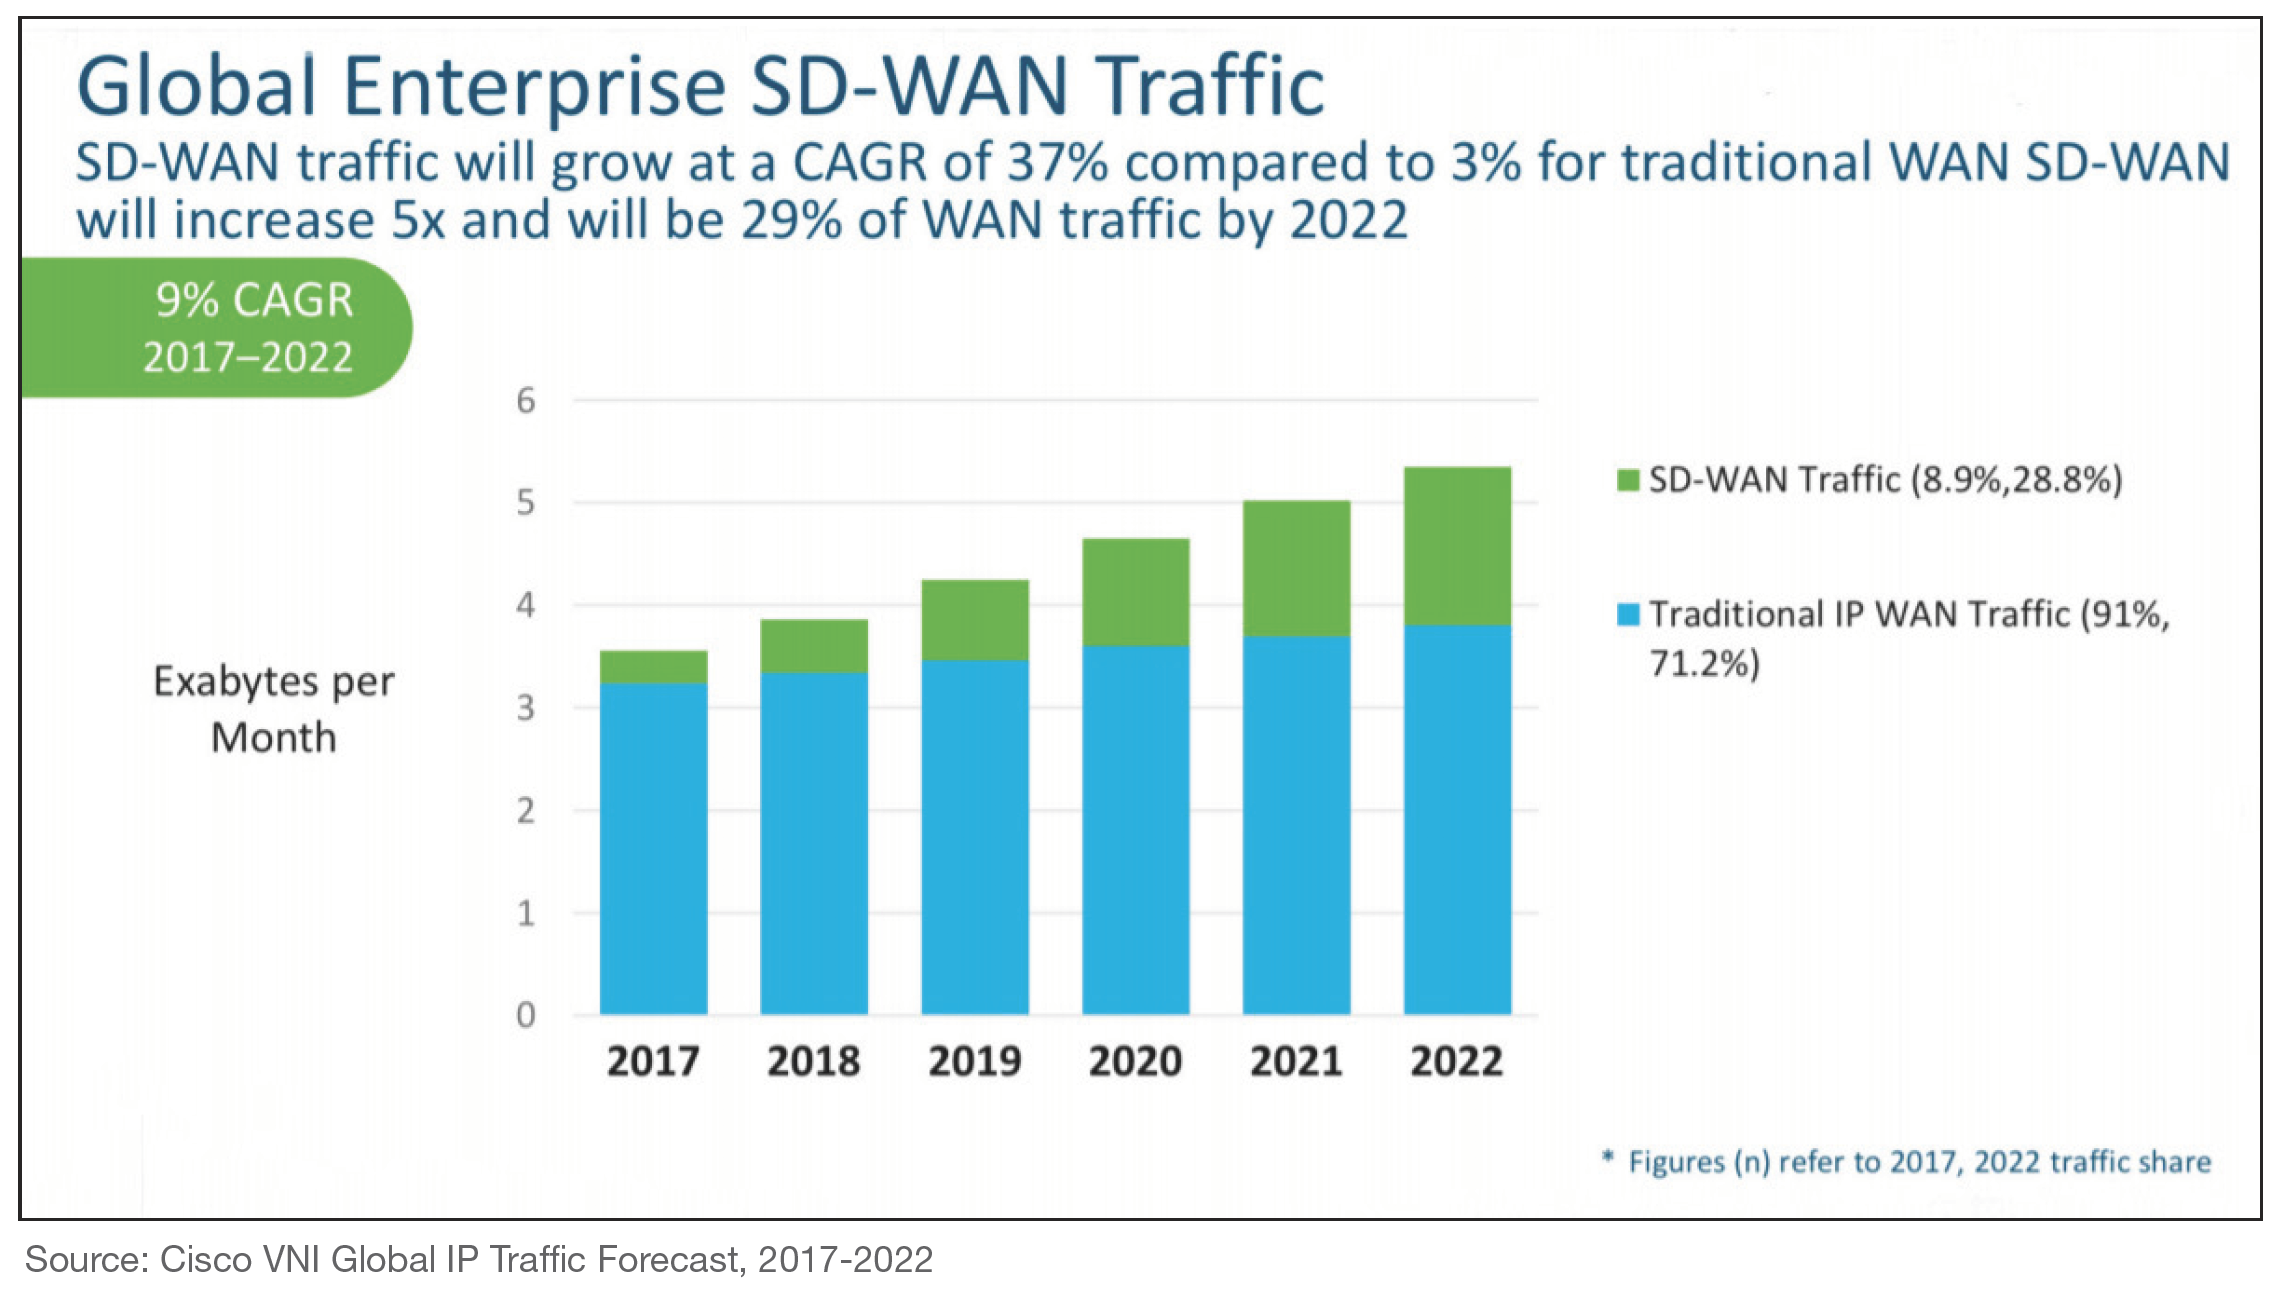 Global Enterprise SD-WAN Traffic. Source: Cisco VNI Global IP Traffic Forecast, 2017 - 2022